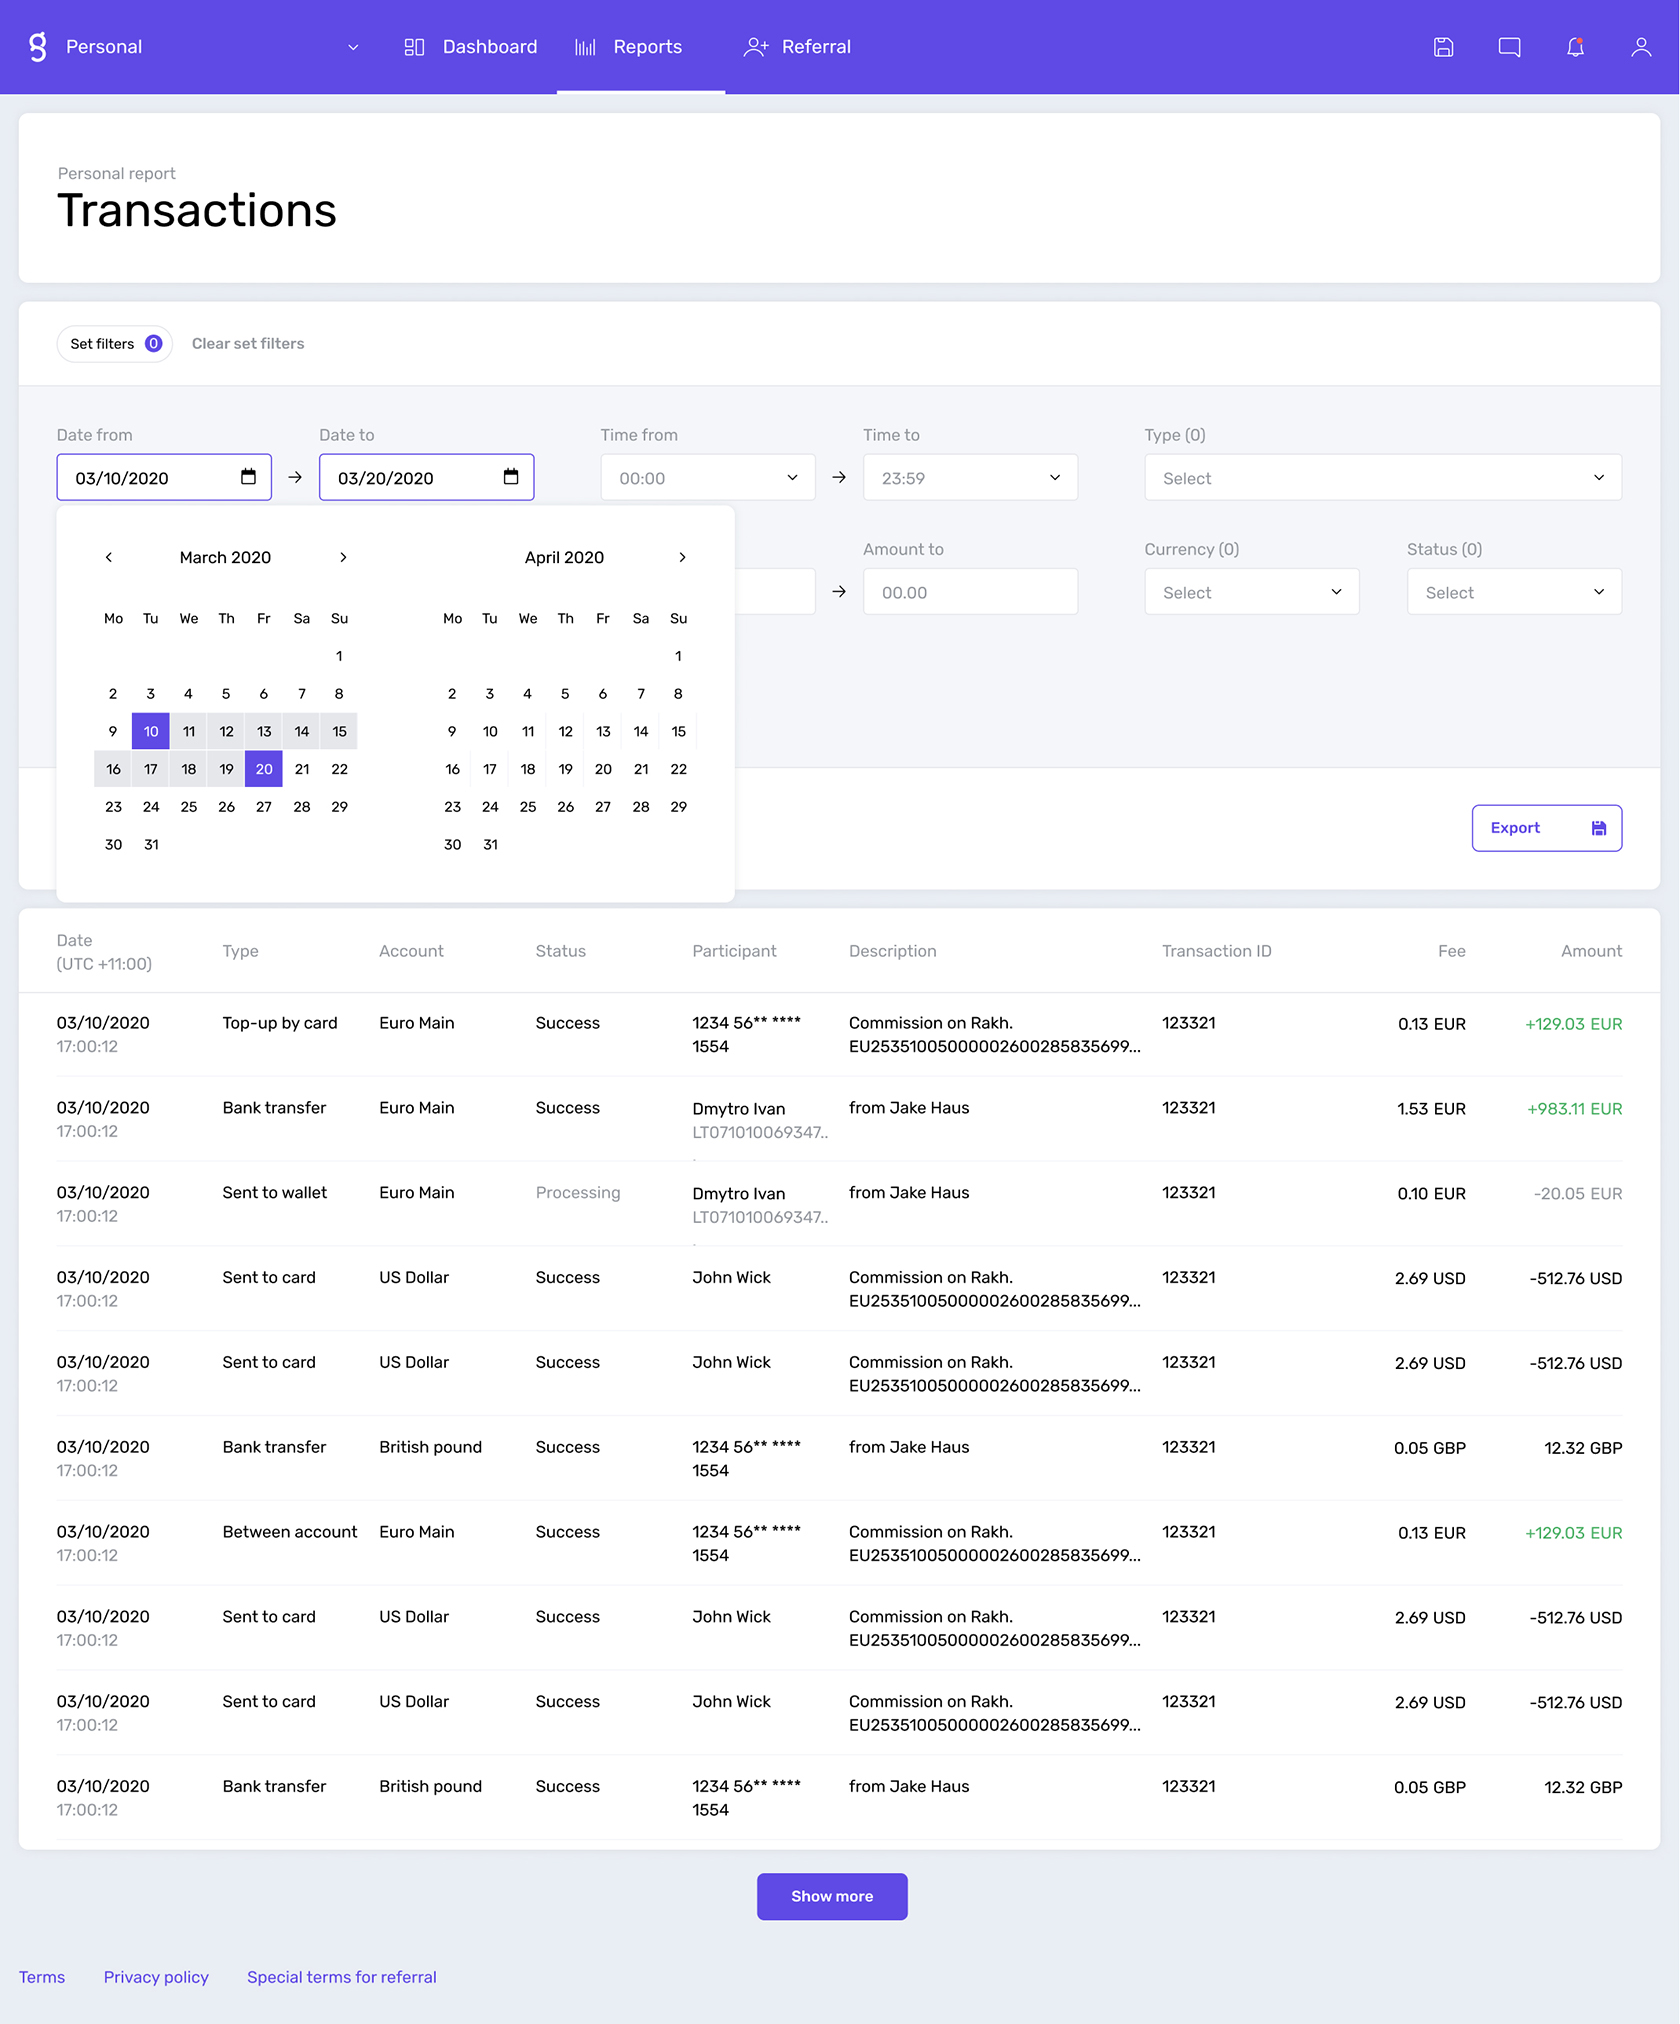 Transaction reports in Genome